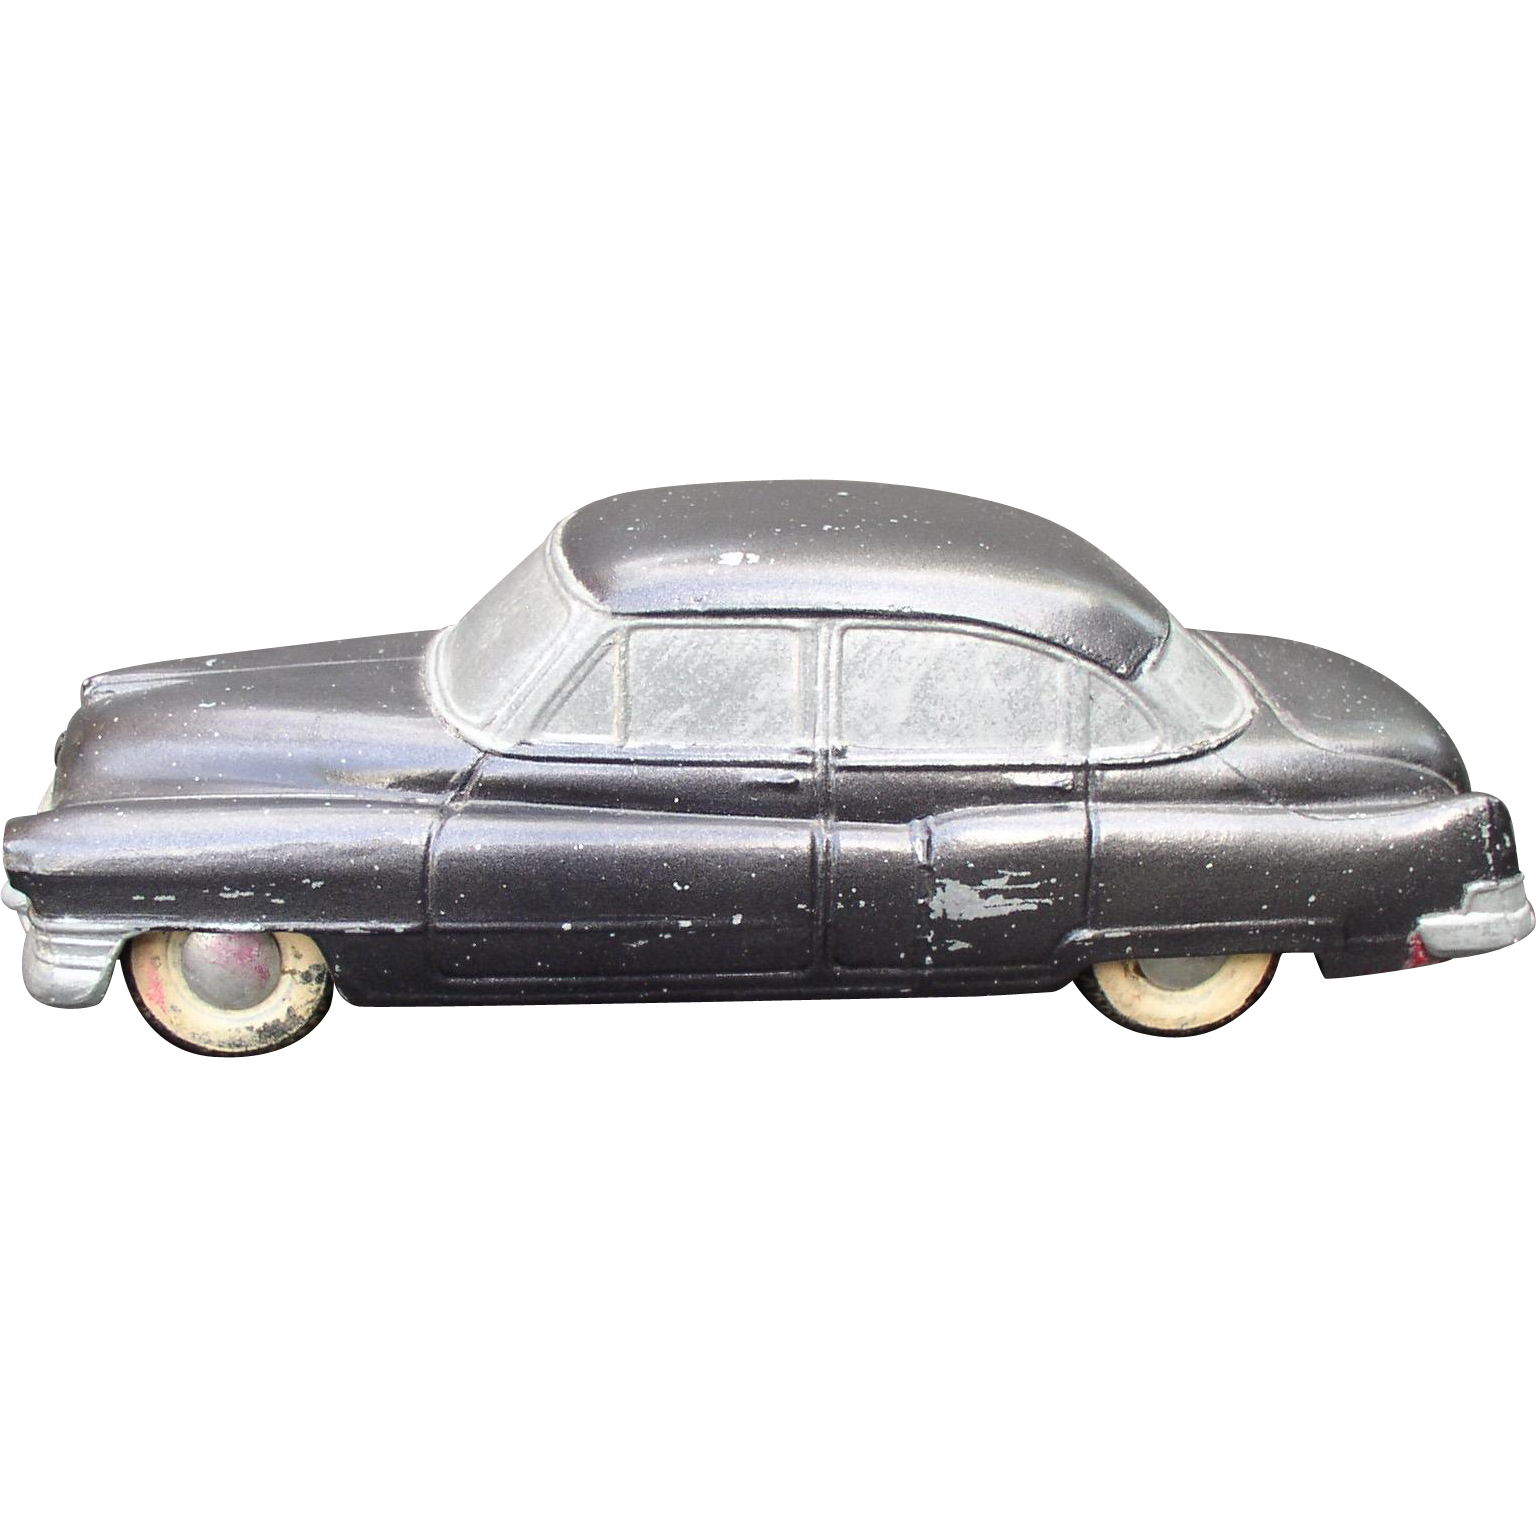 1952 Cadillac Fleetwood BANTHRICO Chicago ILL  Cast Steel Promo Car Bank